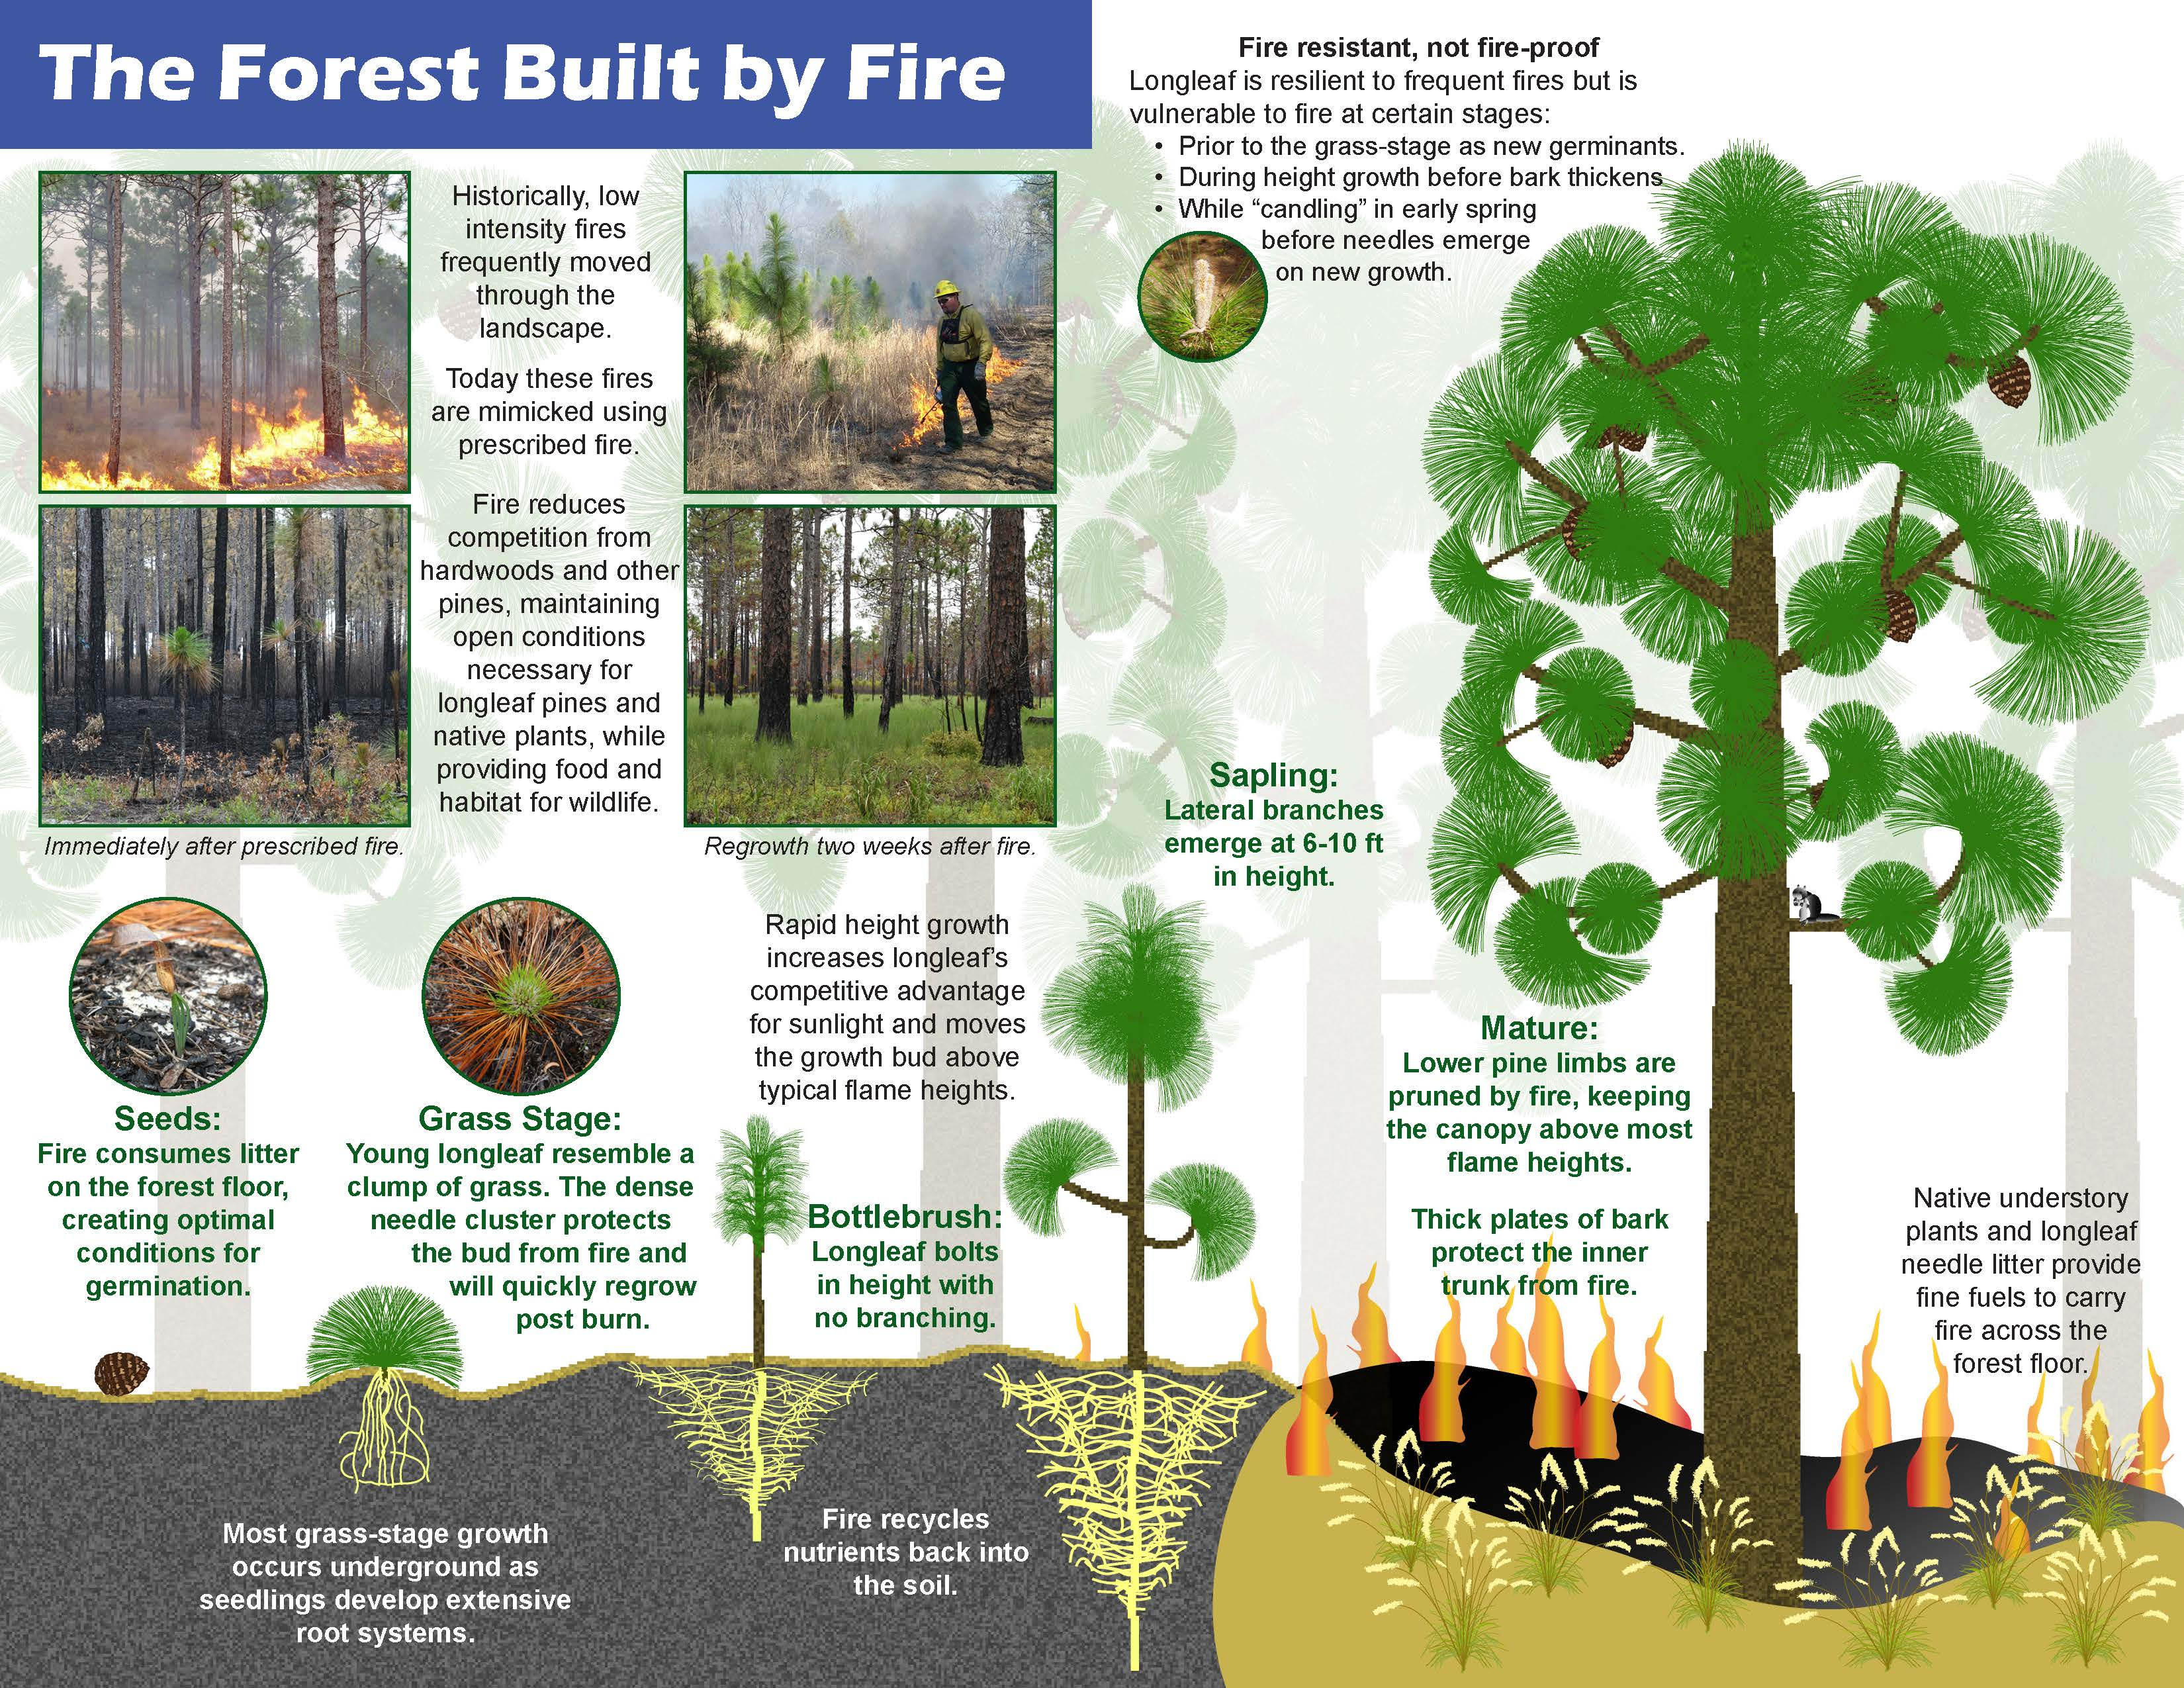 Prescribed Fire and Longleaf Infographic